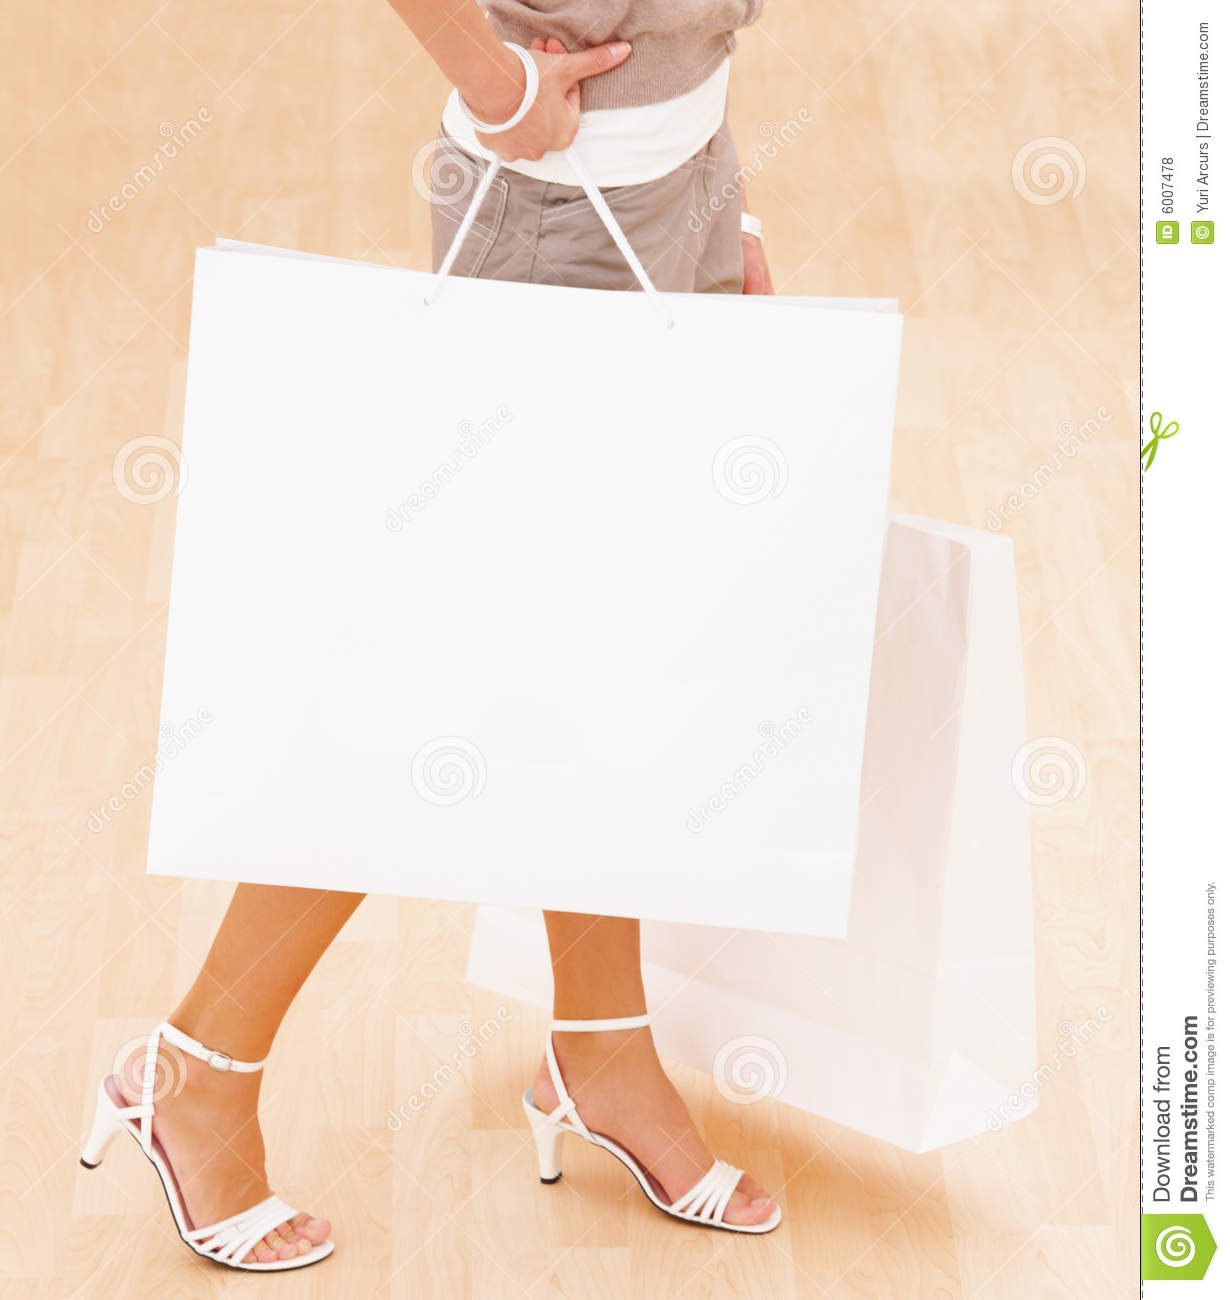 New Happy Woman Holding Shopping Bags Royalty-Free Stock Photo | CartoonDealer.com #16628673